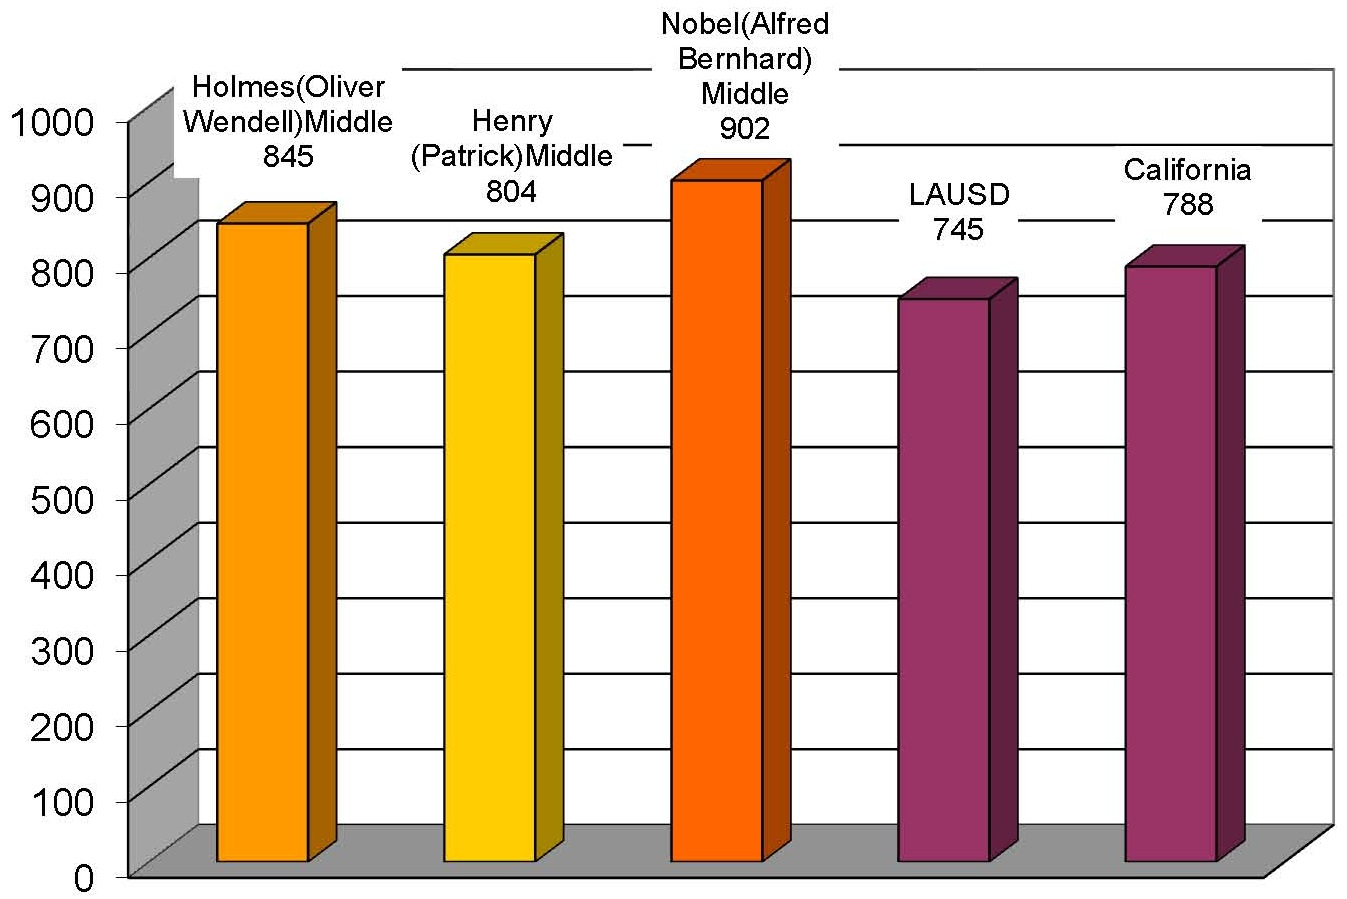 Comparison of API scores of Middle Schools in 2011-2012